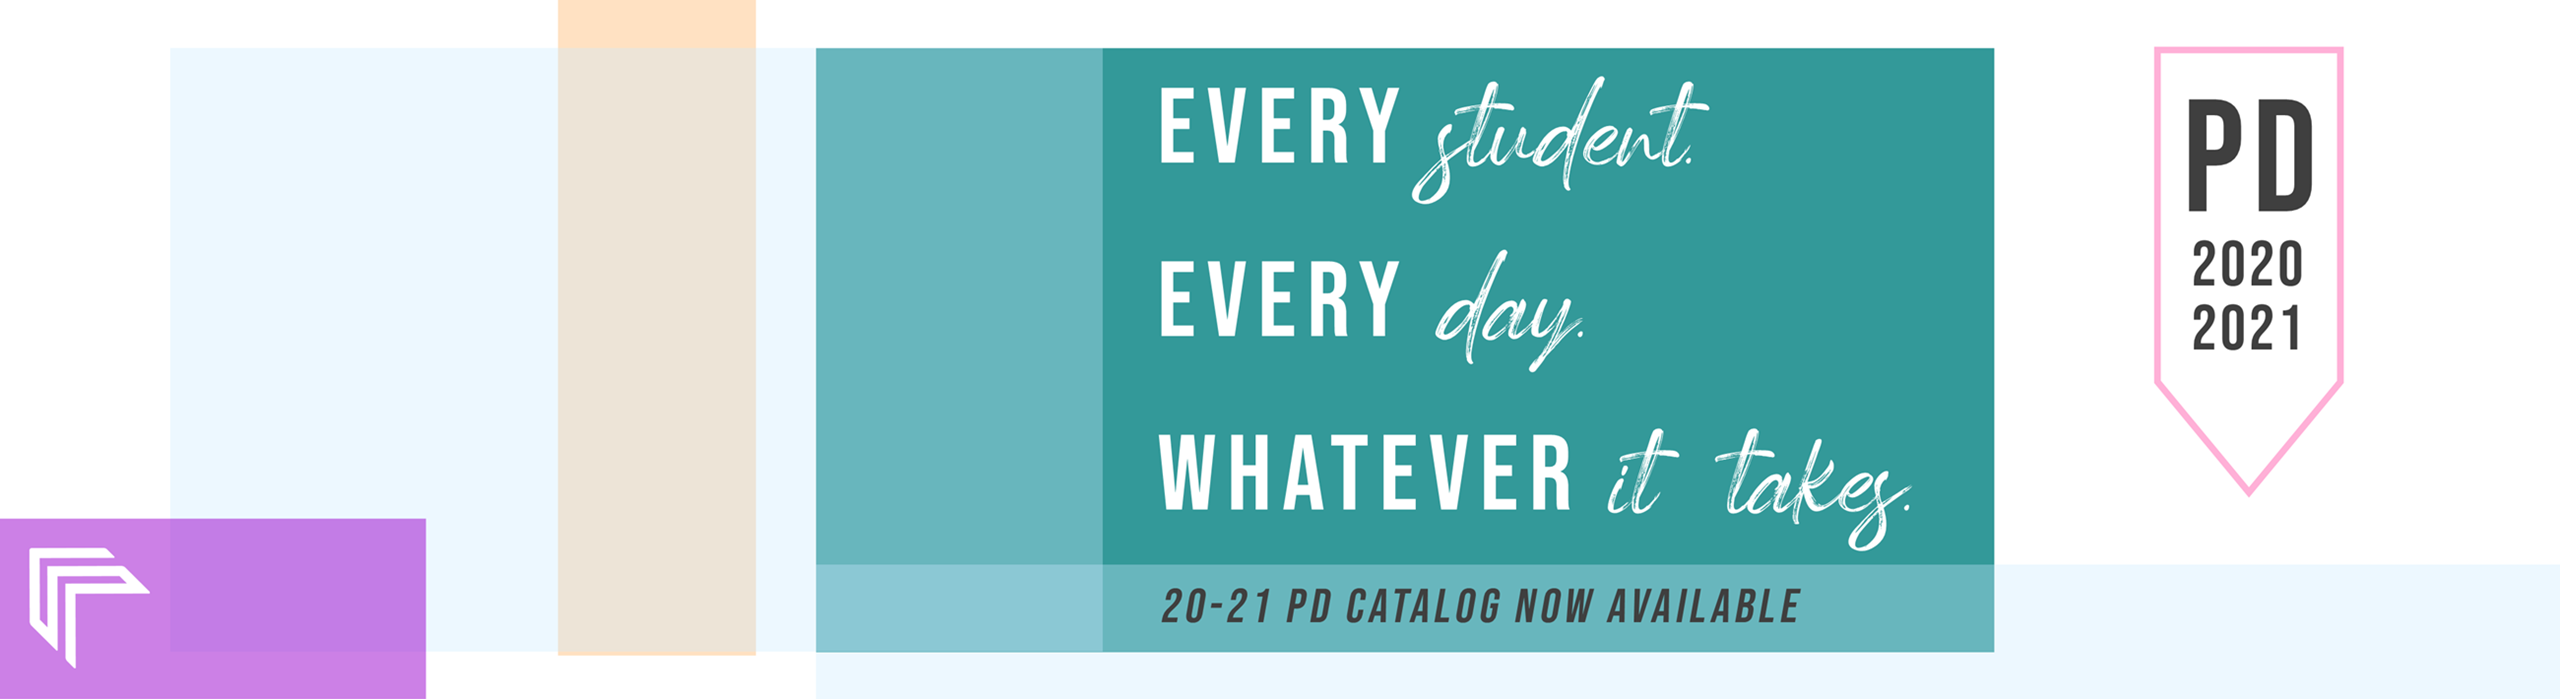 20-21 NWOESC PD Catalog now available to download